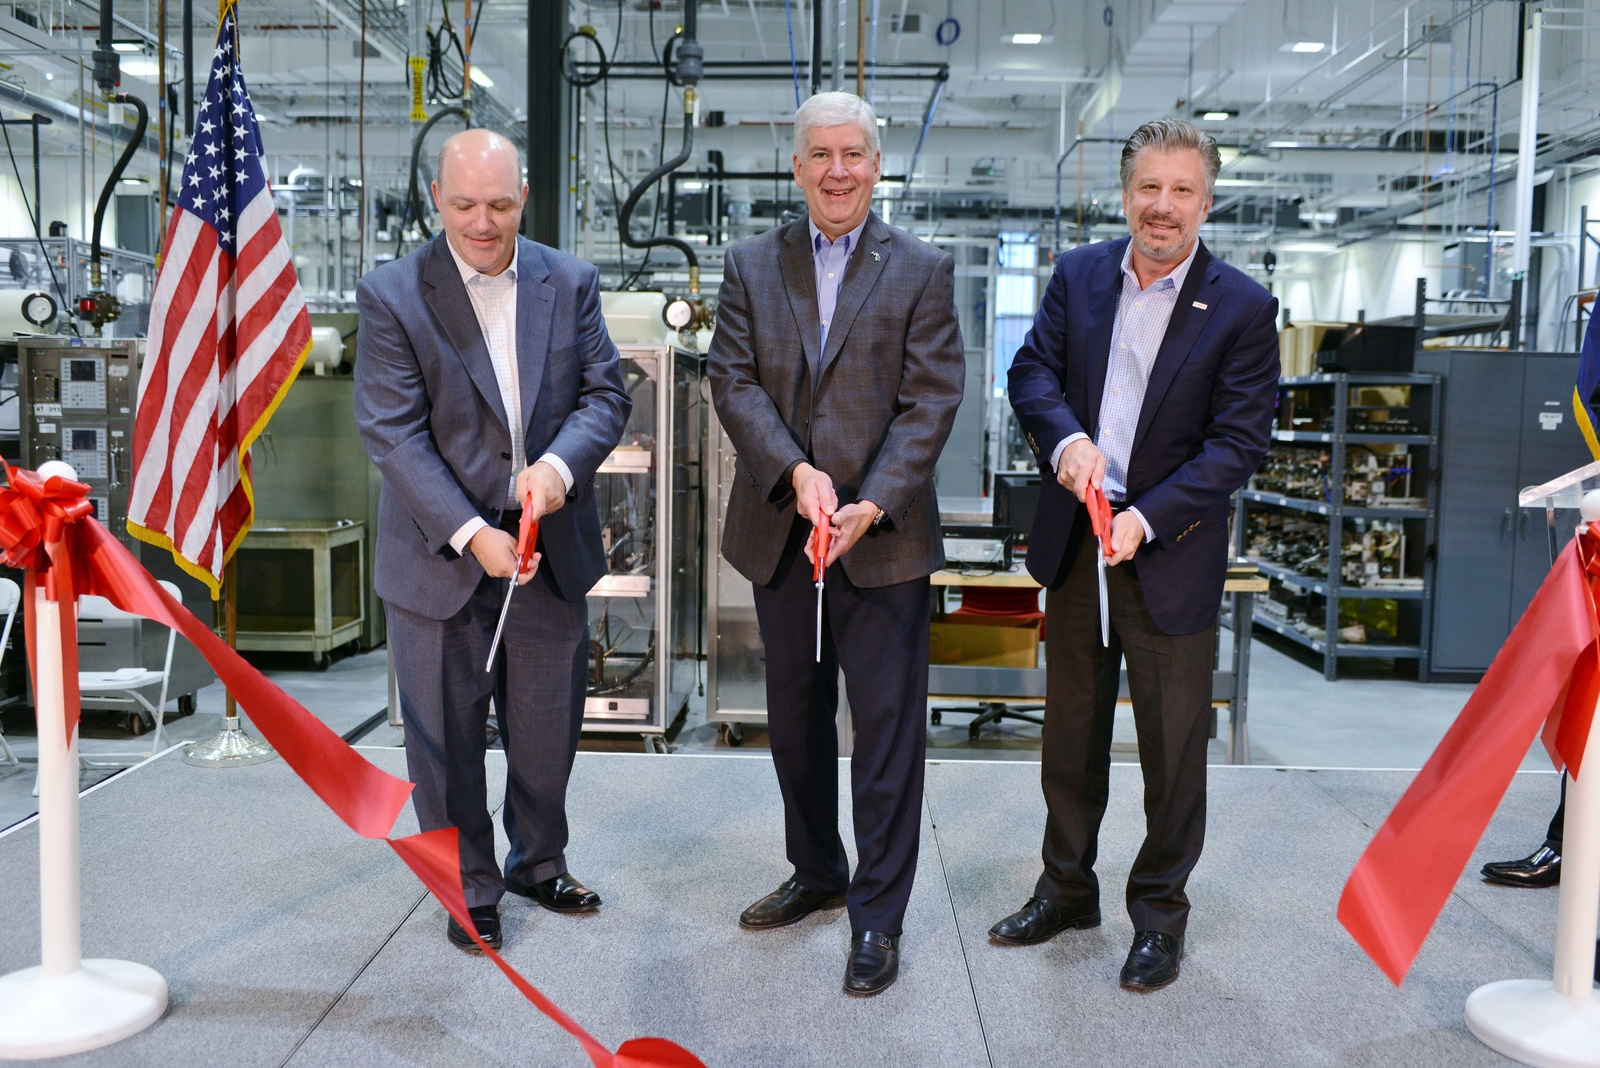 Room for ideas: Bosch expands technology centers in the U.S.